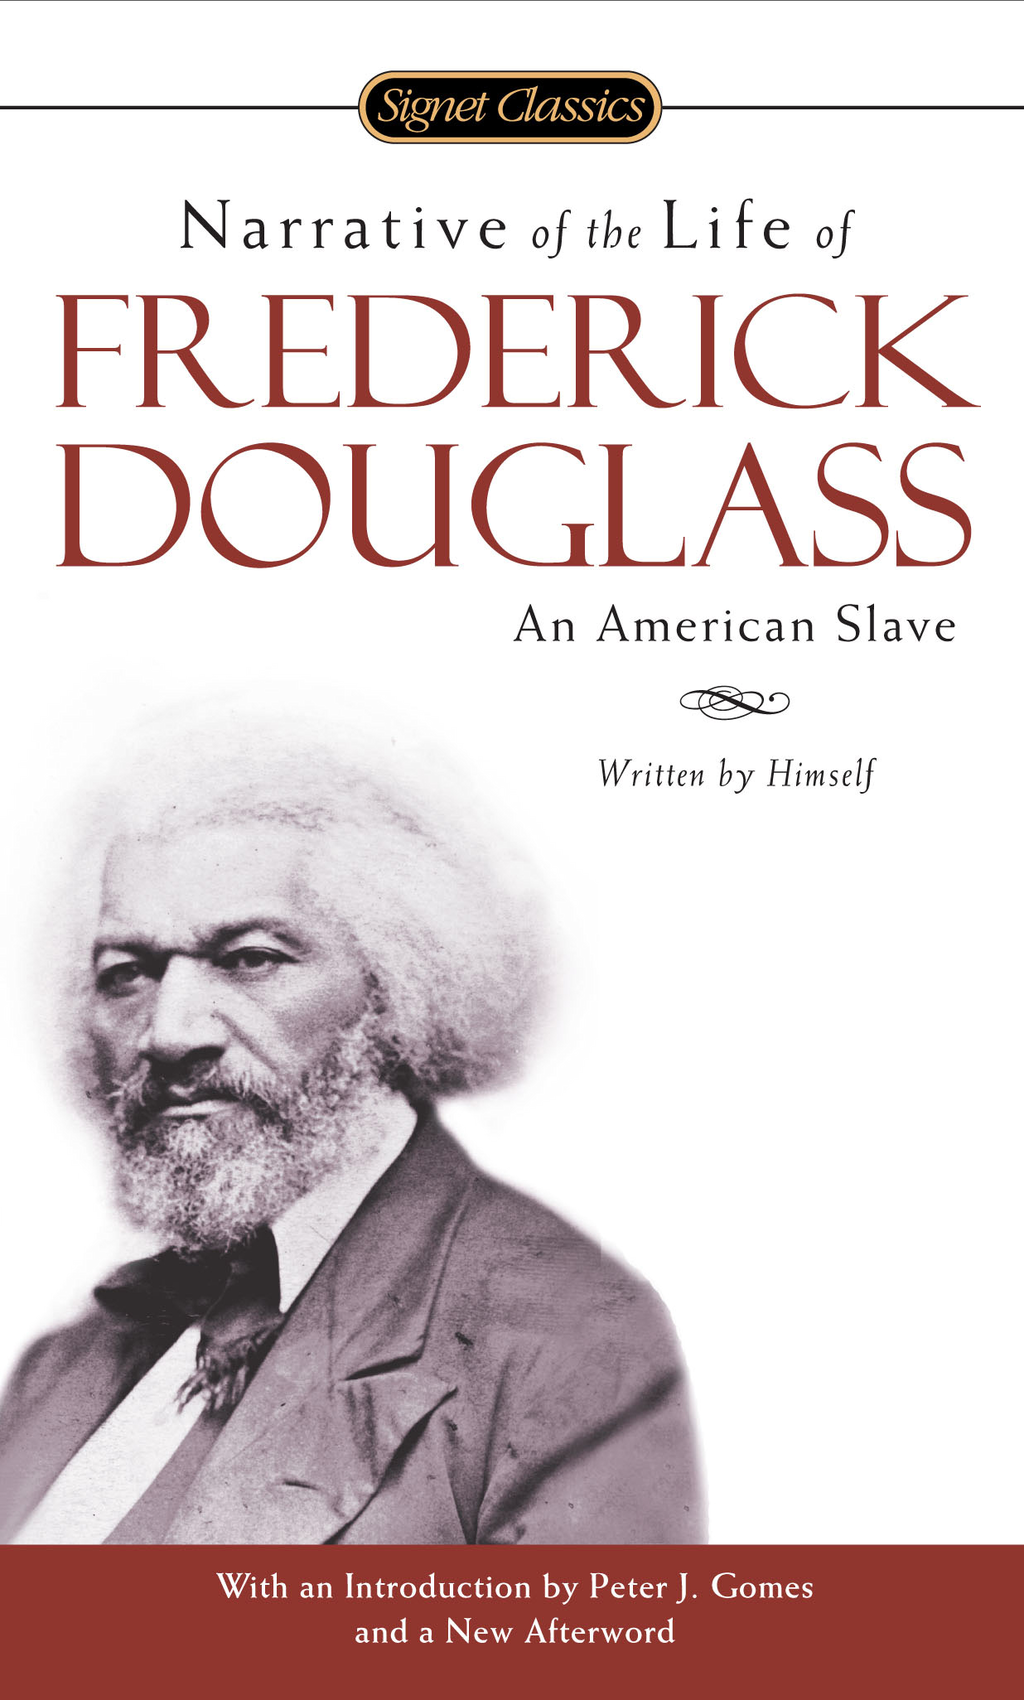 Narrative of the Life of Frederick Douglass By: Frederick Douglass